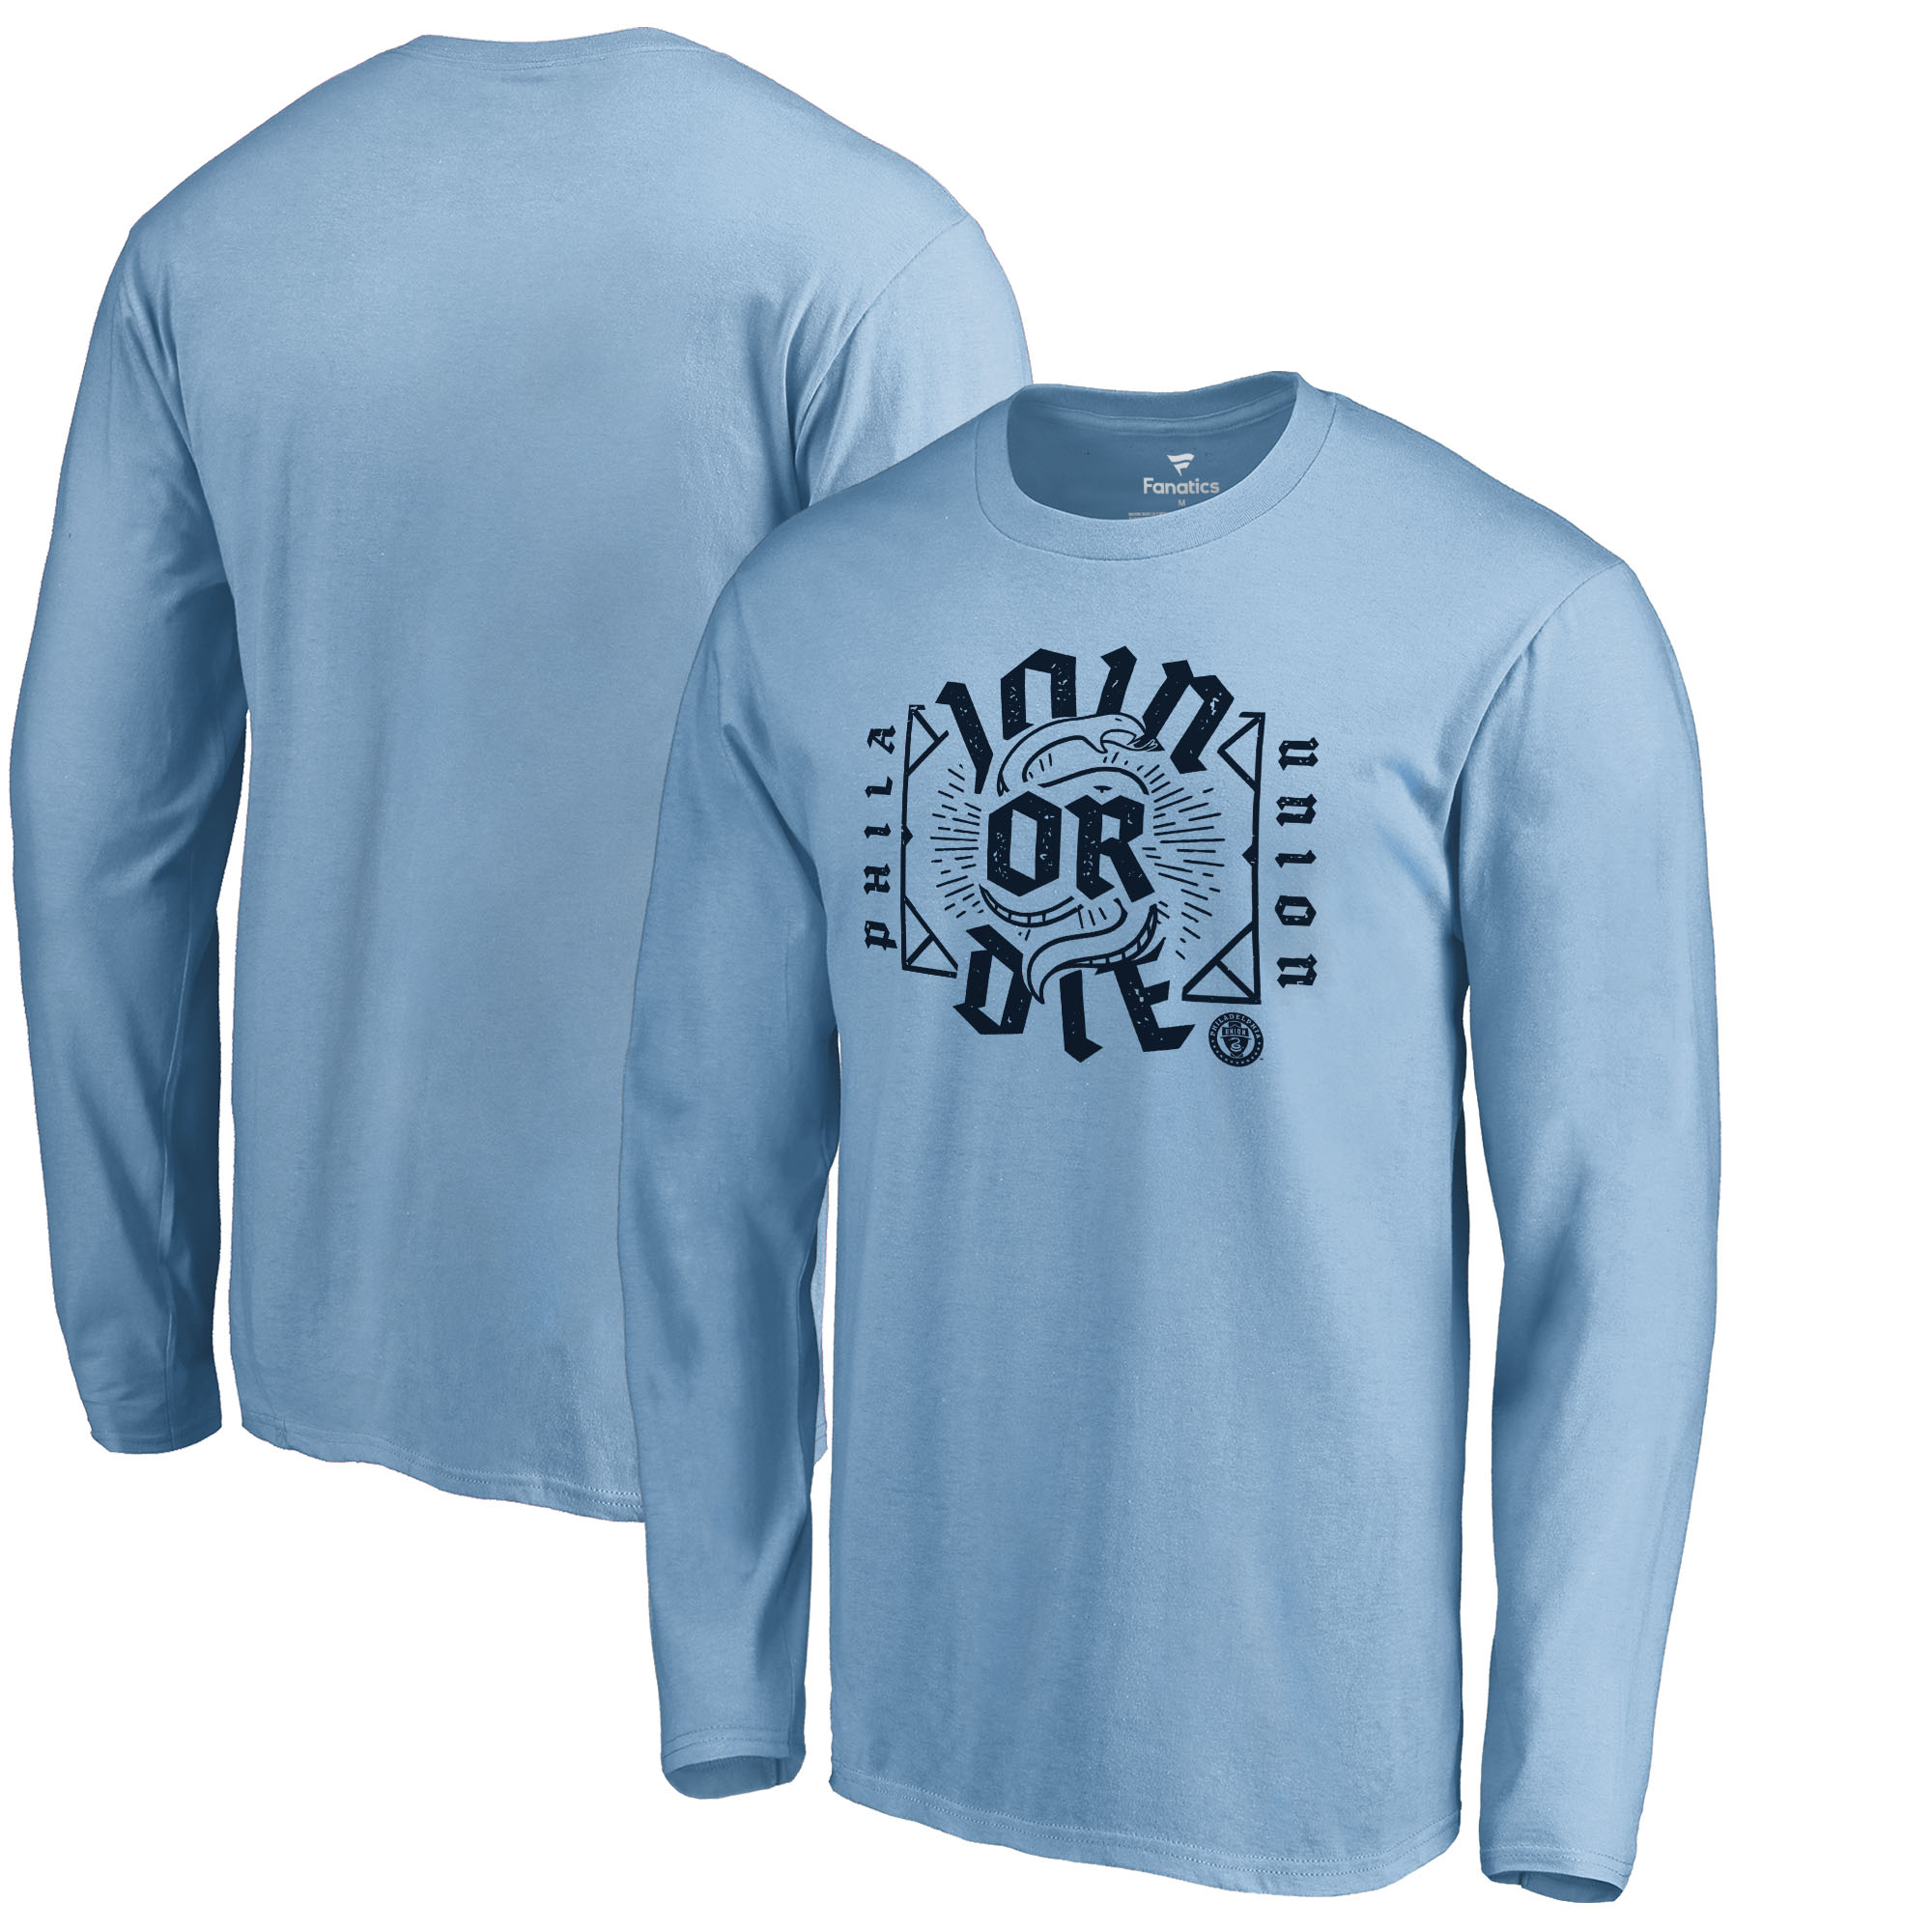 Philadelphia Union Fanatics Branded Hometown Collection Long Sleeve T-Shirt - Light Blue